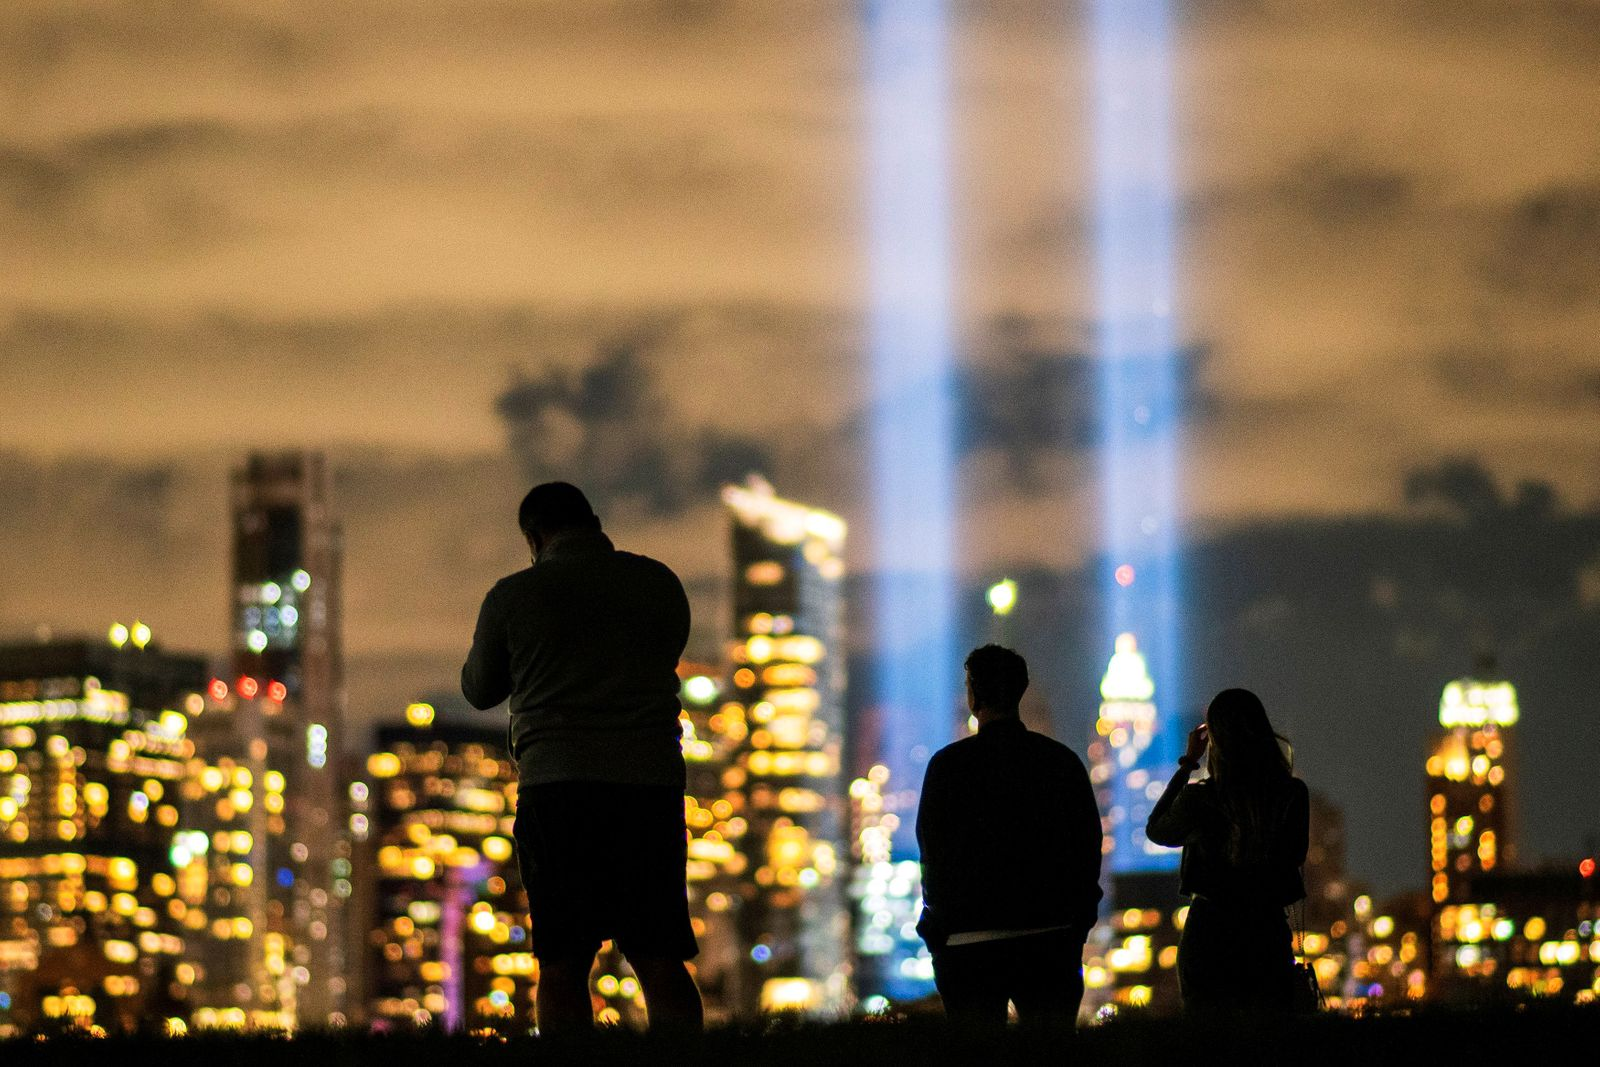 Ceremonies held to mark 19th anniversary of September 11, 2001 attacks on World Trade Center in New York